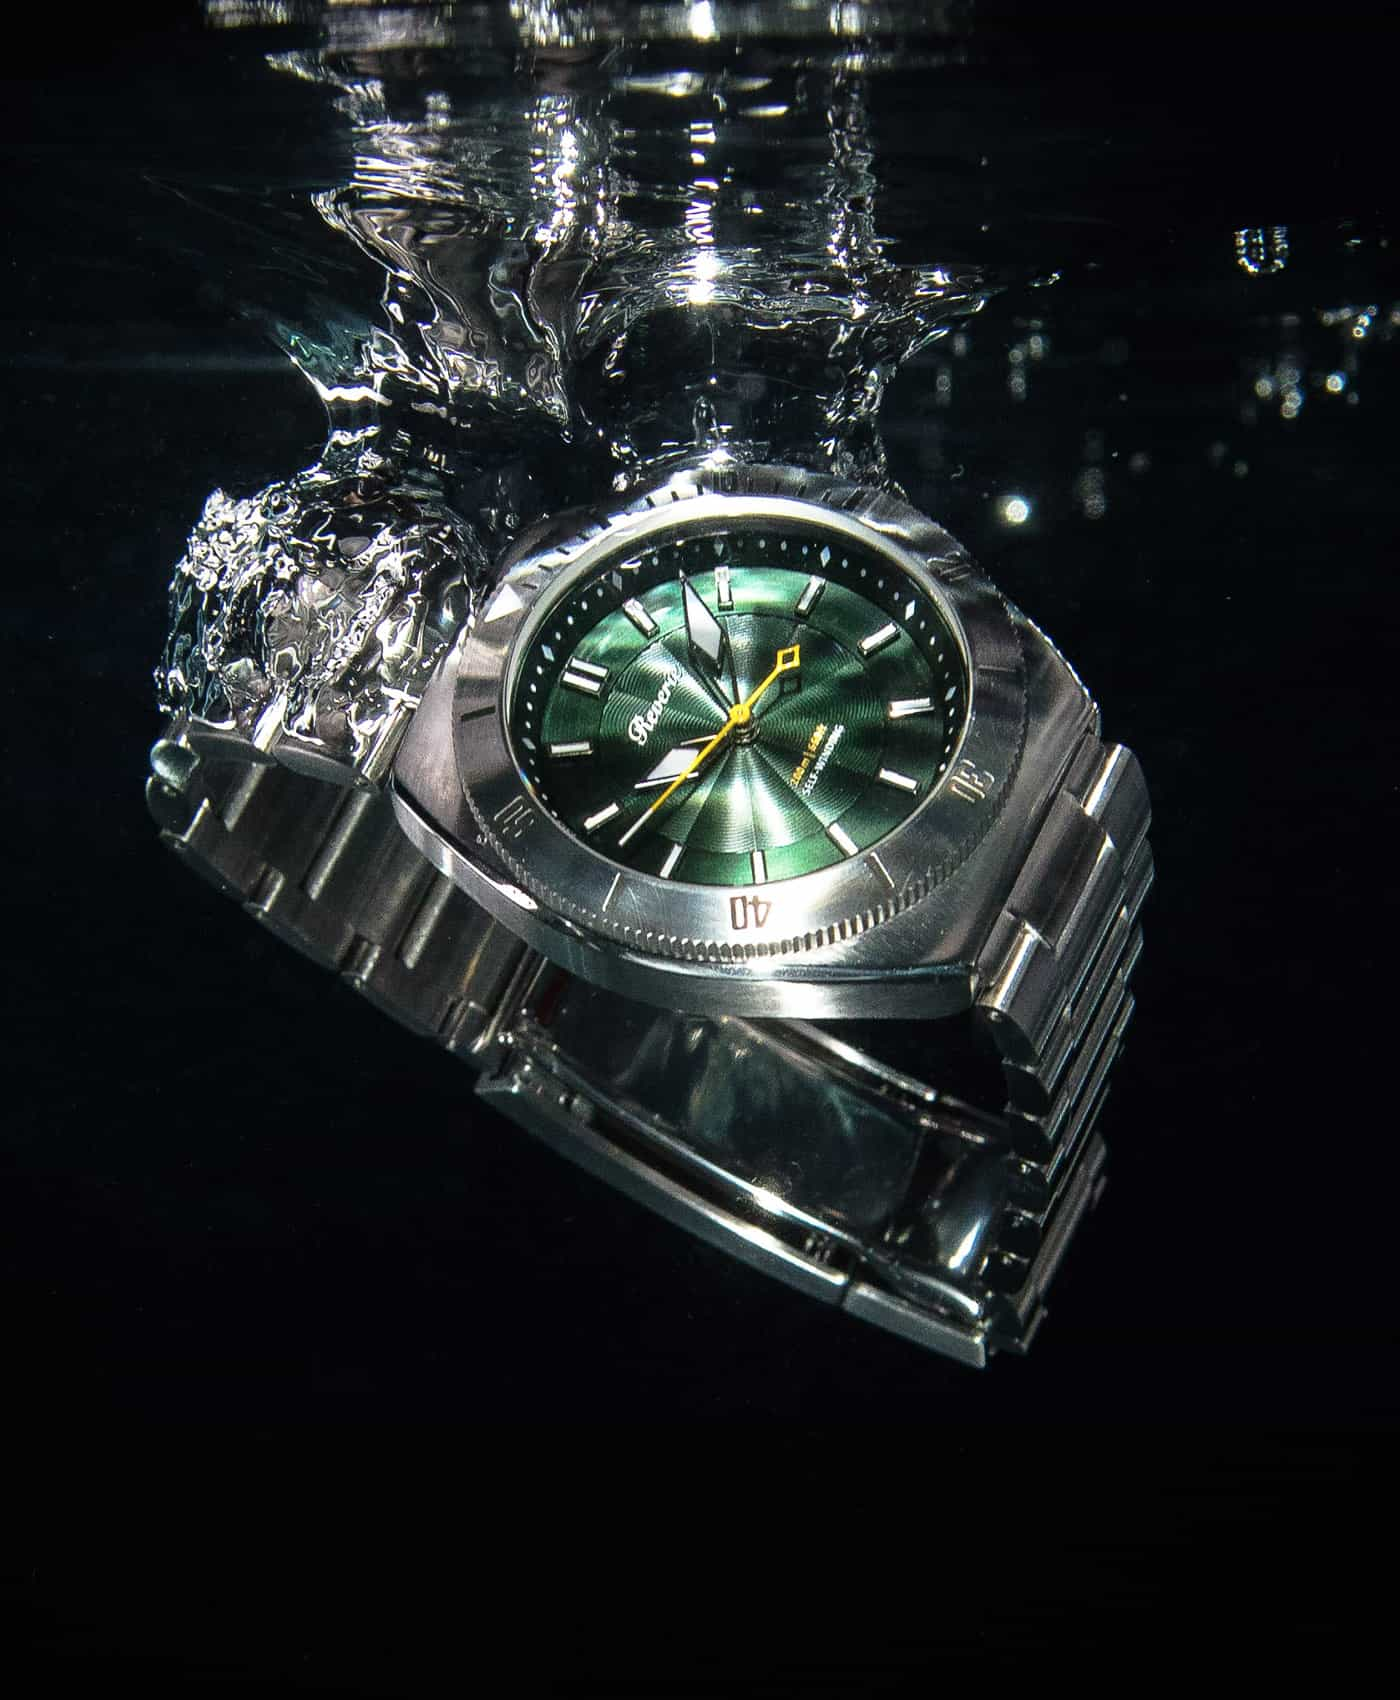 Reviere Diver Green-water drop